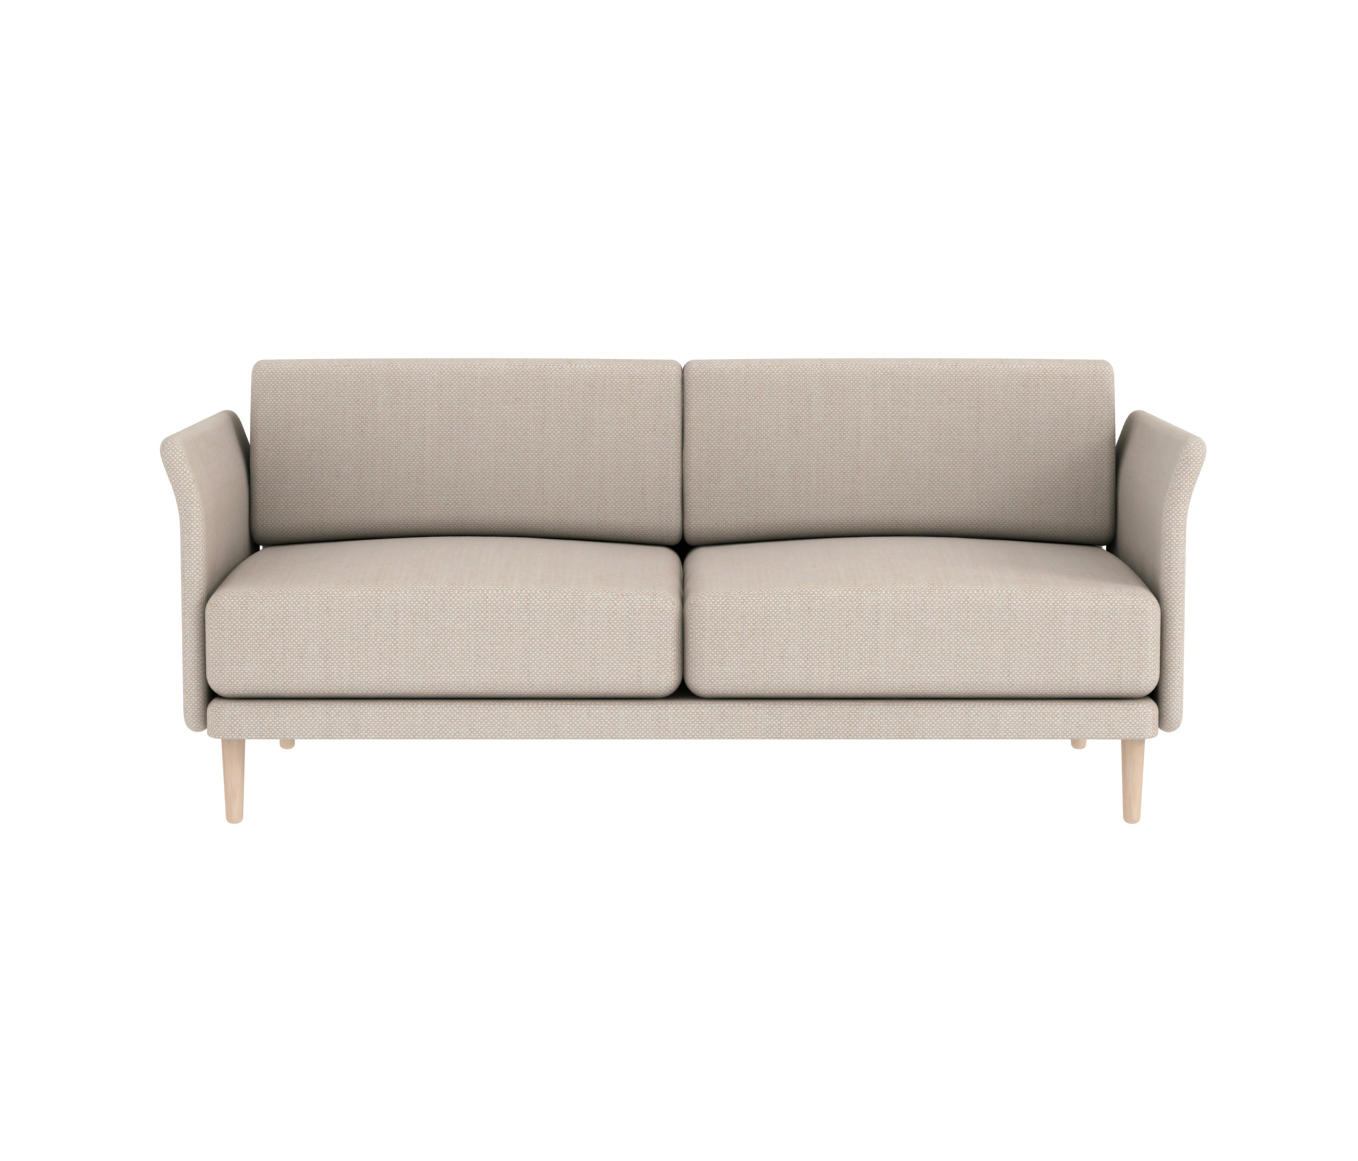 THEO 2-SEAT SOFA - Sofas from Case Furniture | Architonic